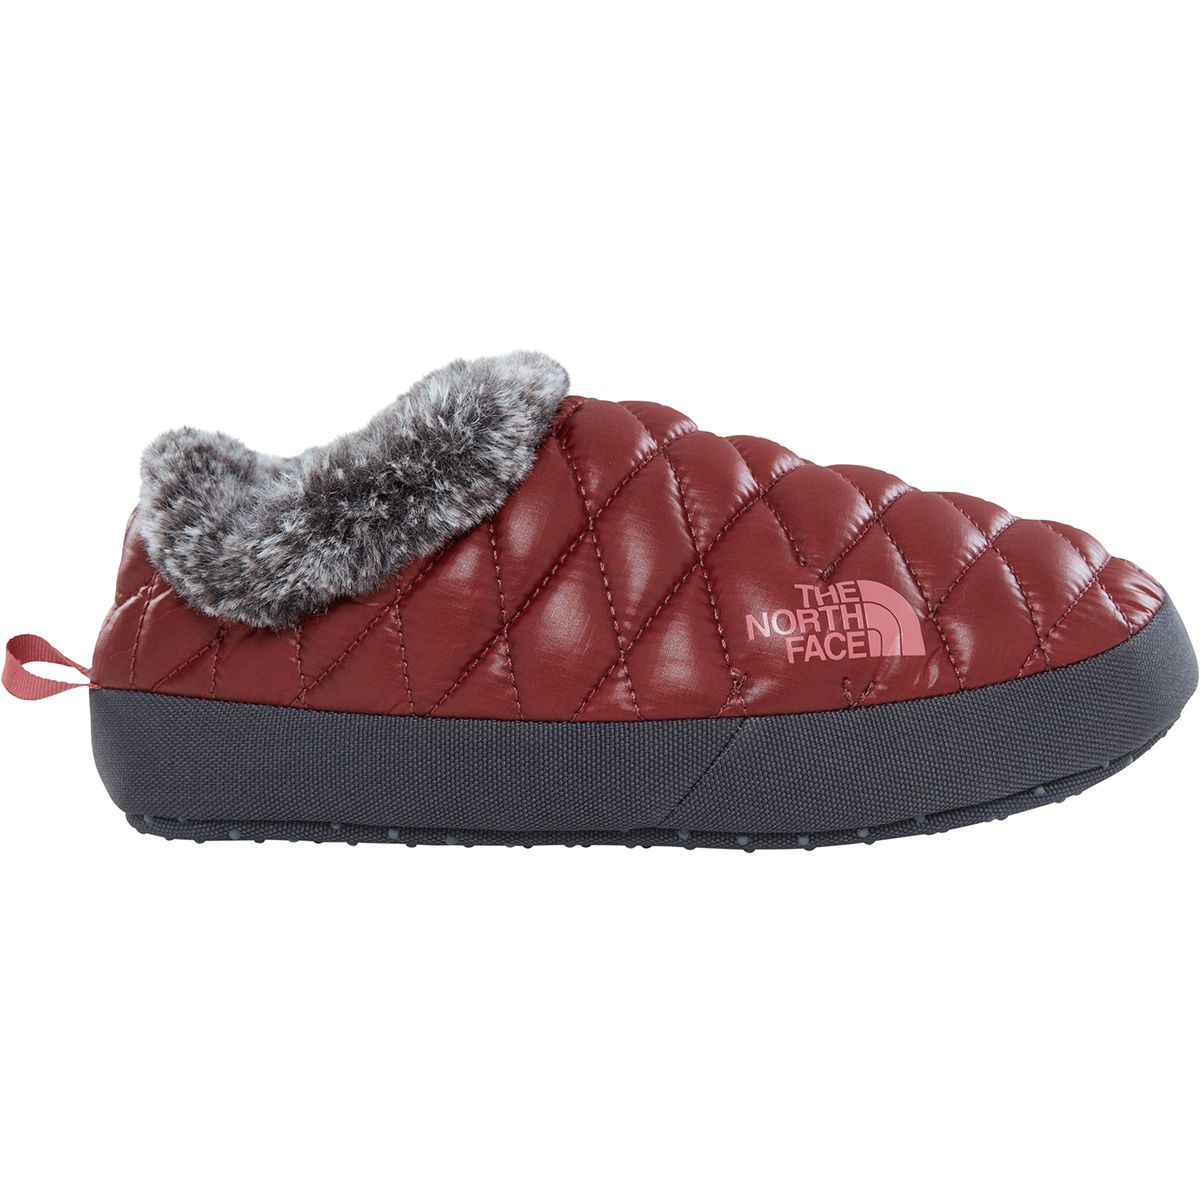 The North Face Damen Thermoball Tent Mule Faux Fur IV Hausschuhe Rot 39, 40, 39.5, 40.5